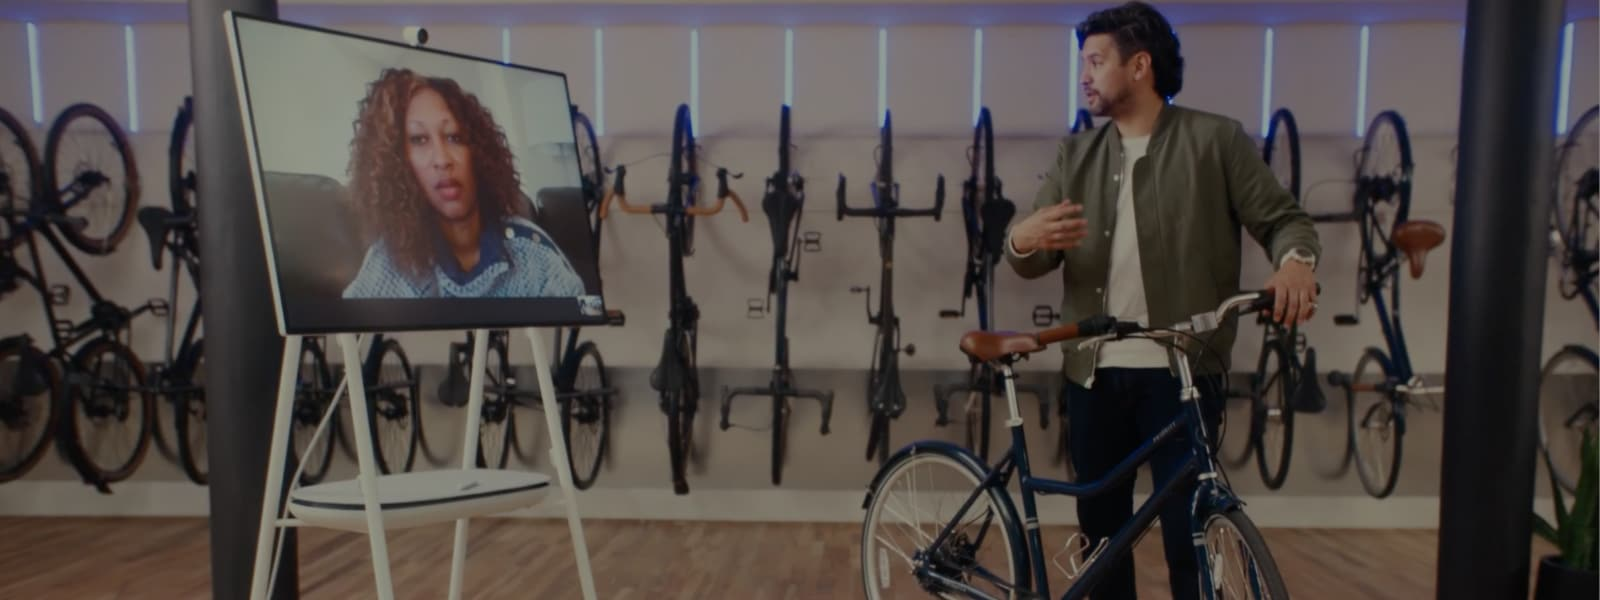 A bicycle shop employee showing a customer a bicycle over a Teams call on a Surface Hub.